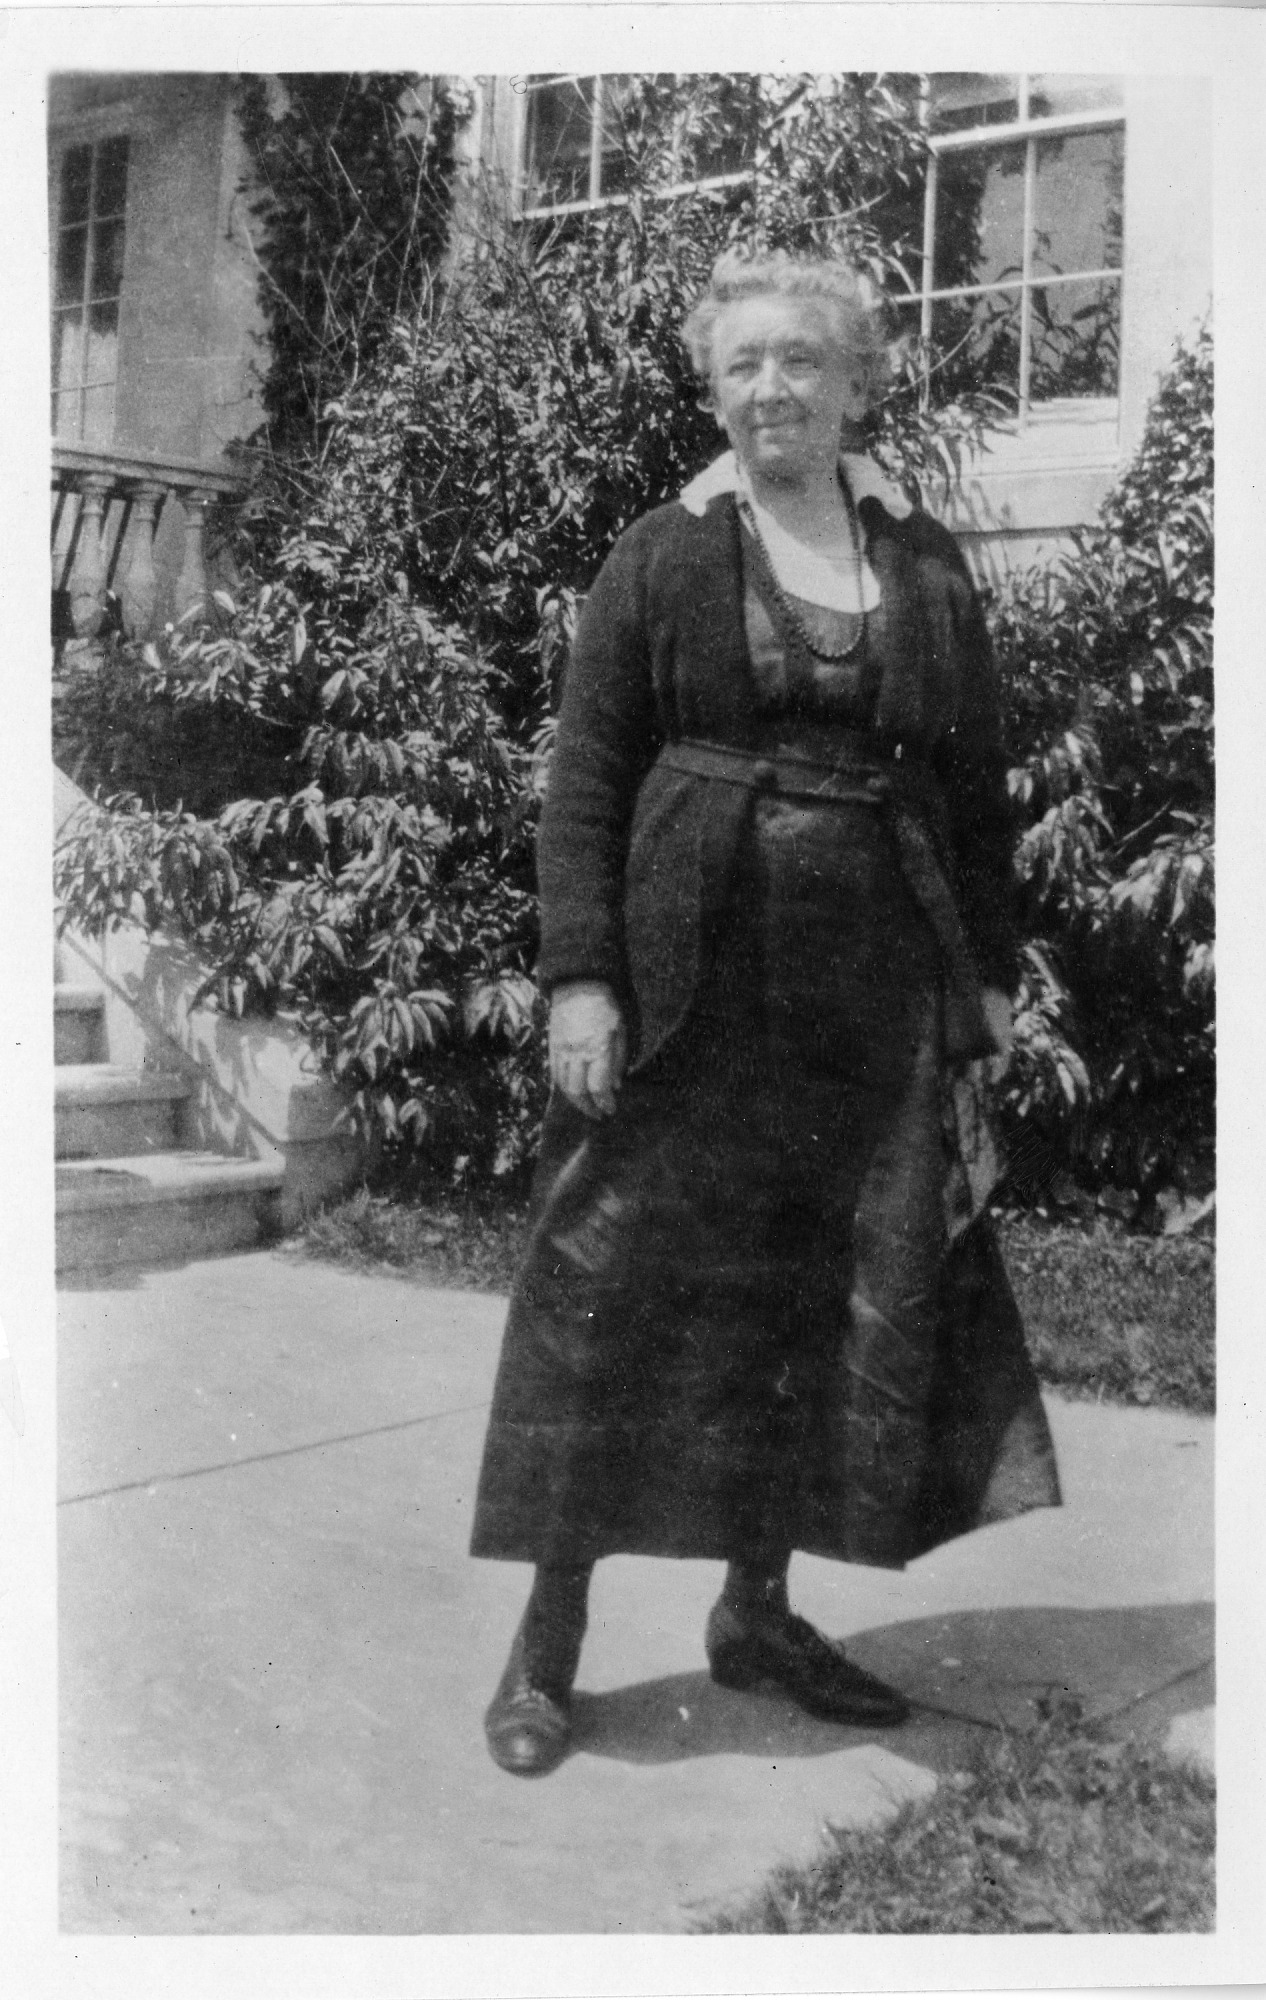 Cornelia Maria Clapp (1849-1934), Smithsonian Institution Archives, SIA Acc. 90-105 [SIA2008-0112].